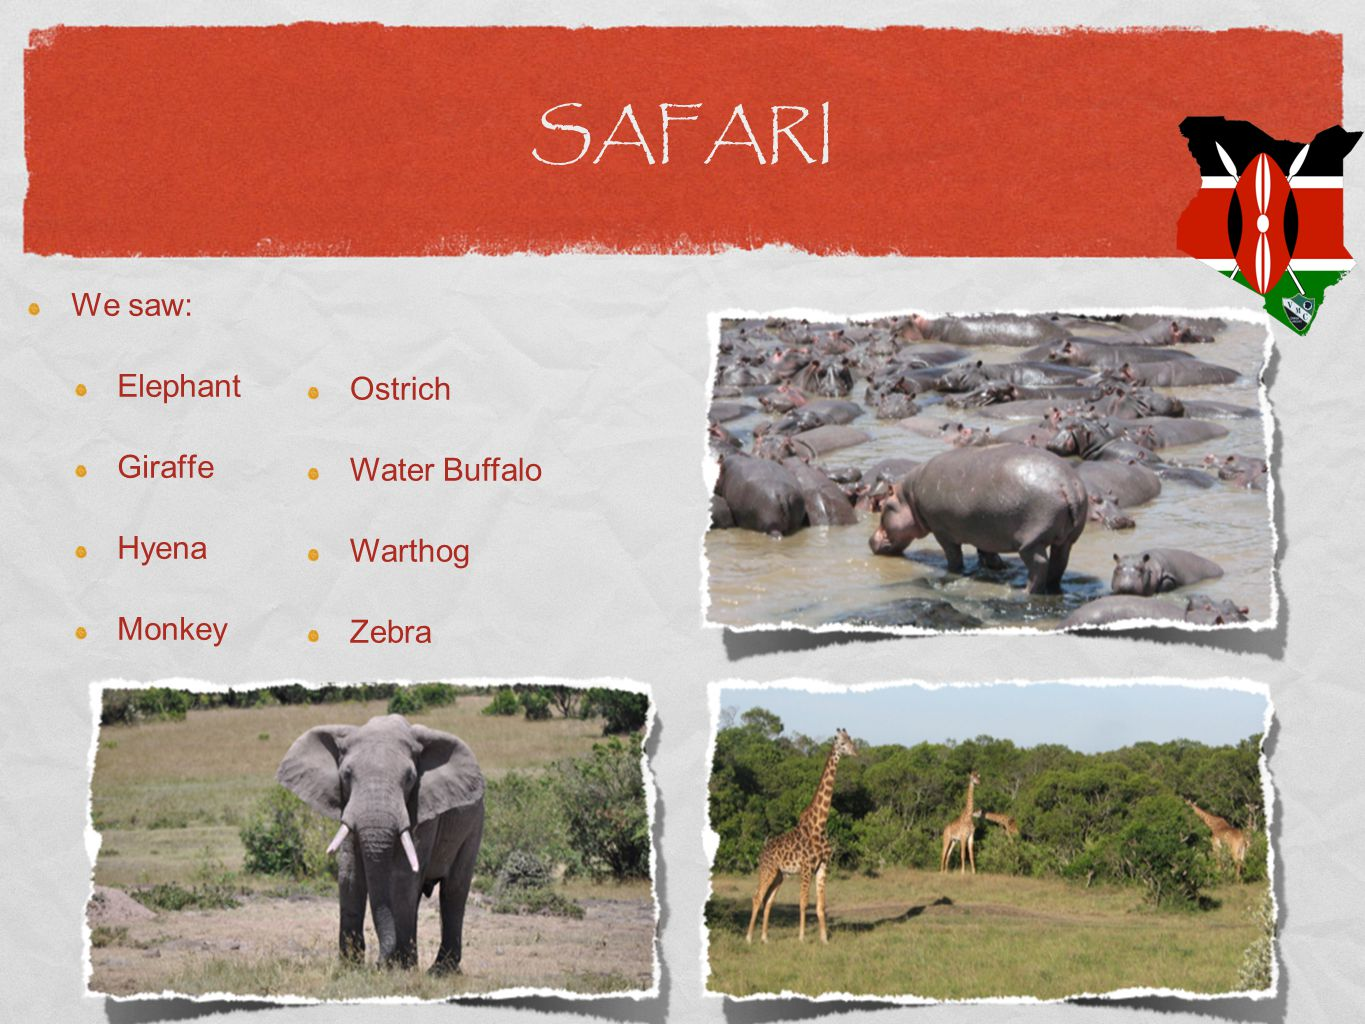 SAFARI We saw: Elephant Giraffe Hyena Monkey Ostrich Water Buffalo Warthog Zebra